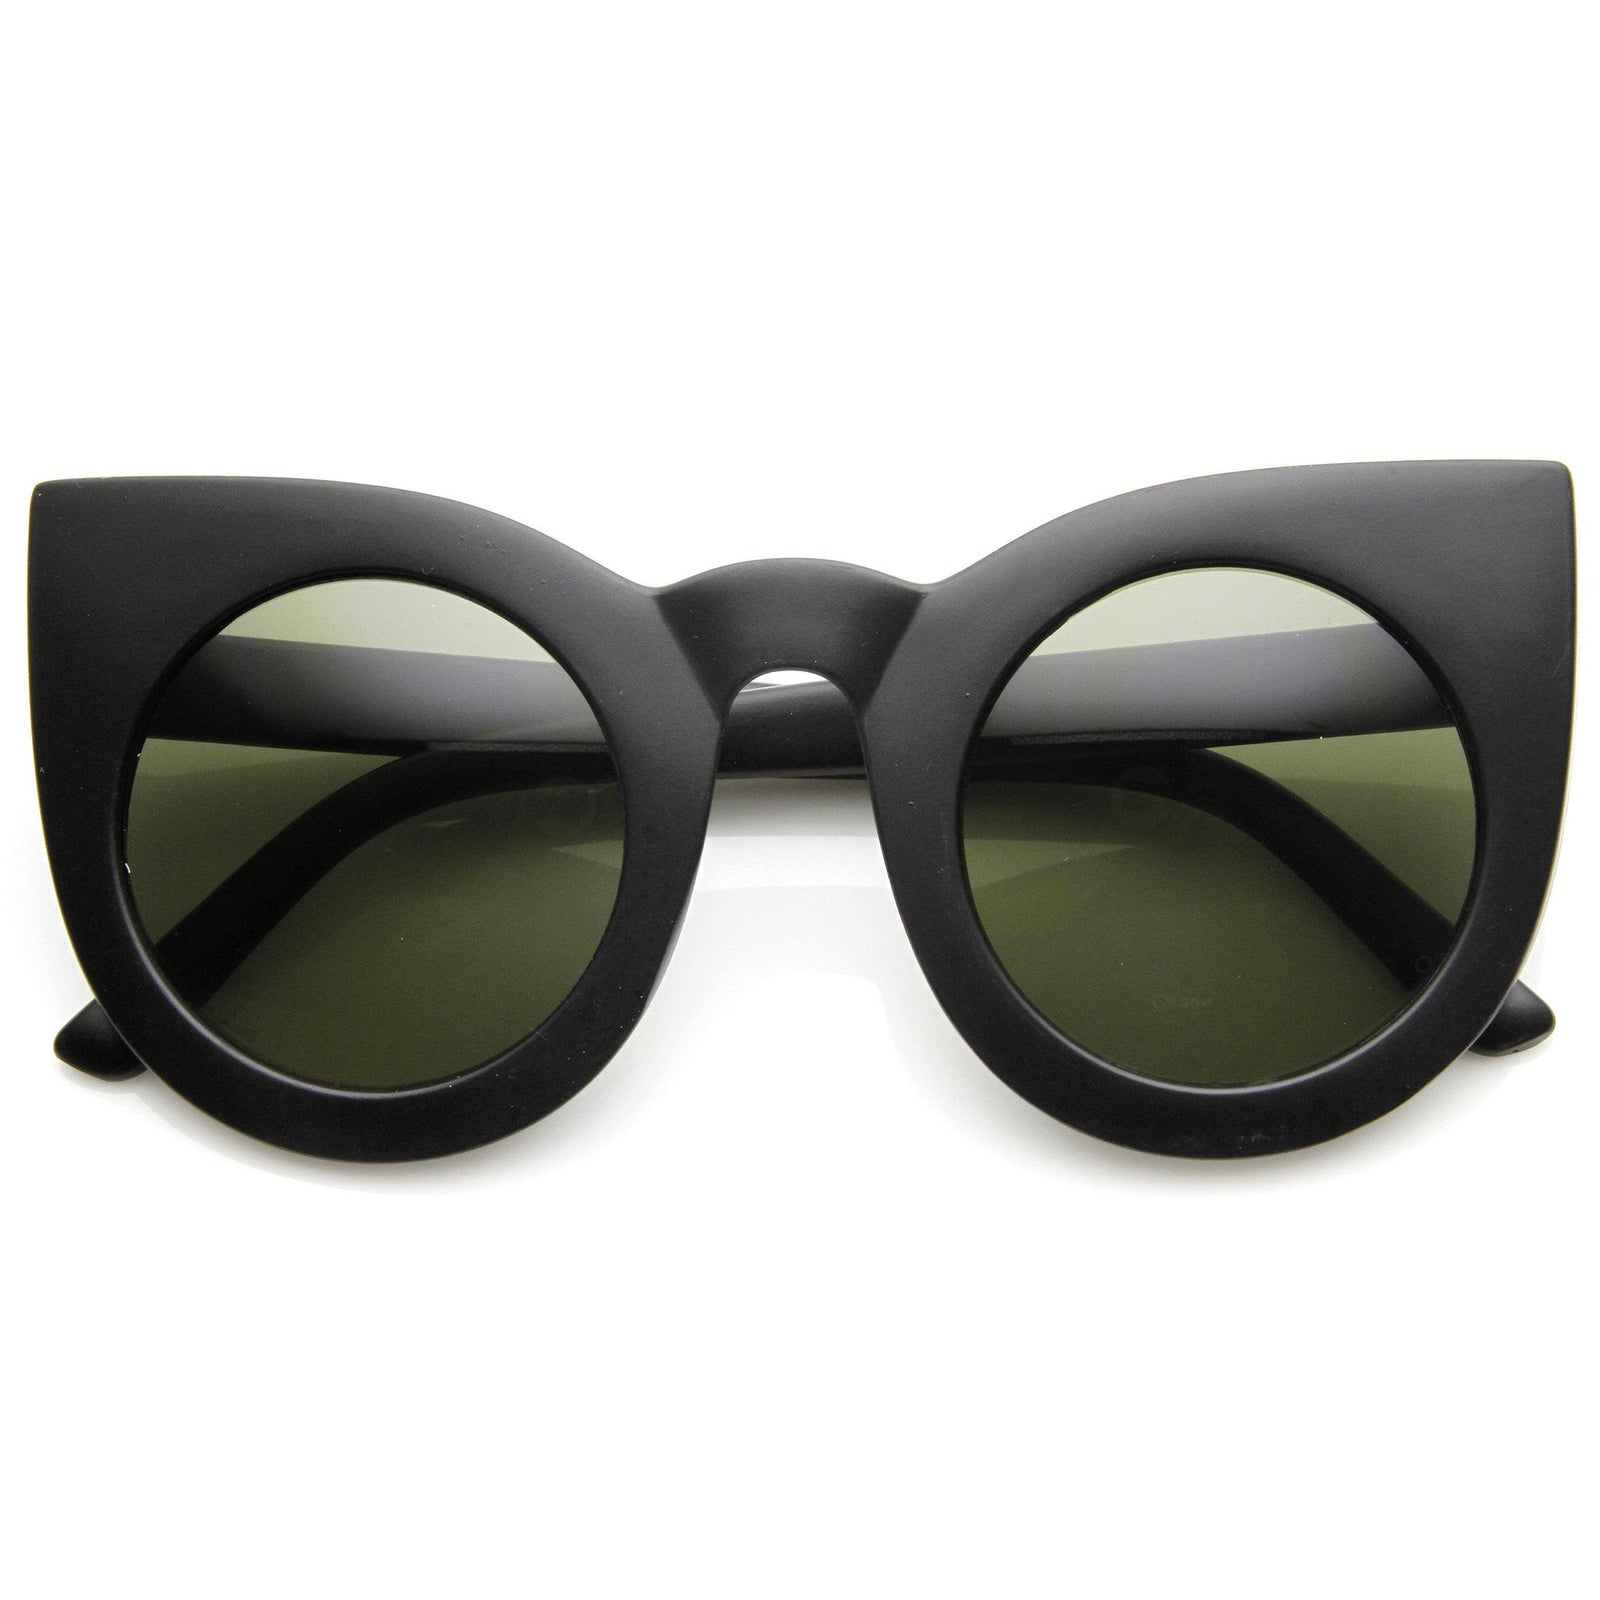 5d1be52874f Oversize Round Circle Pointed Cat Eye Sunglasses 9180